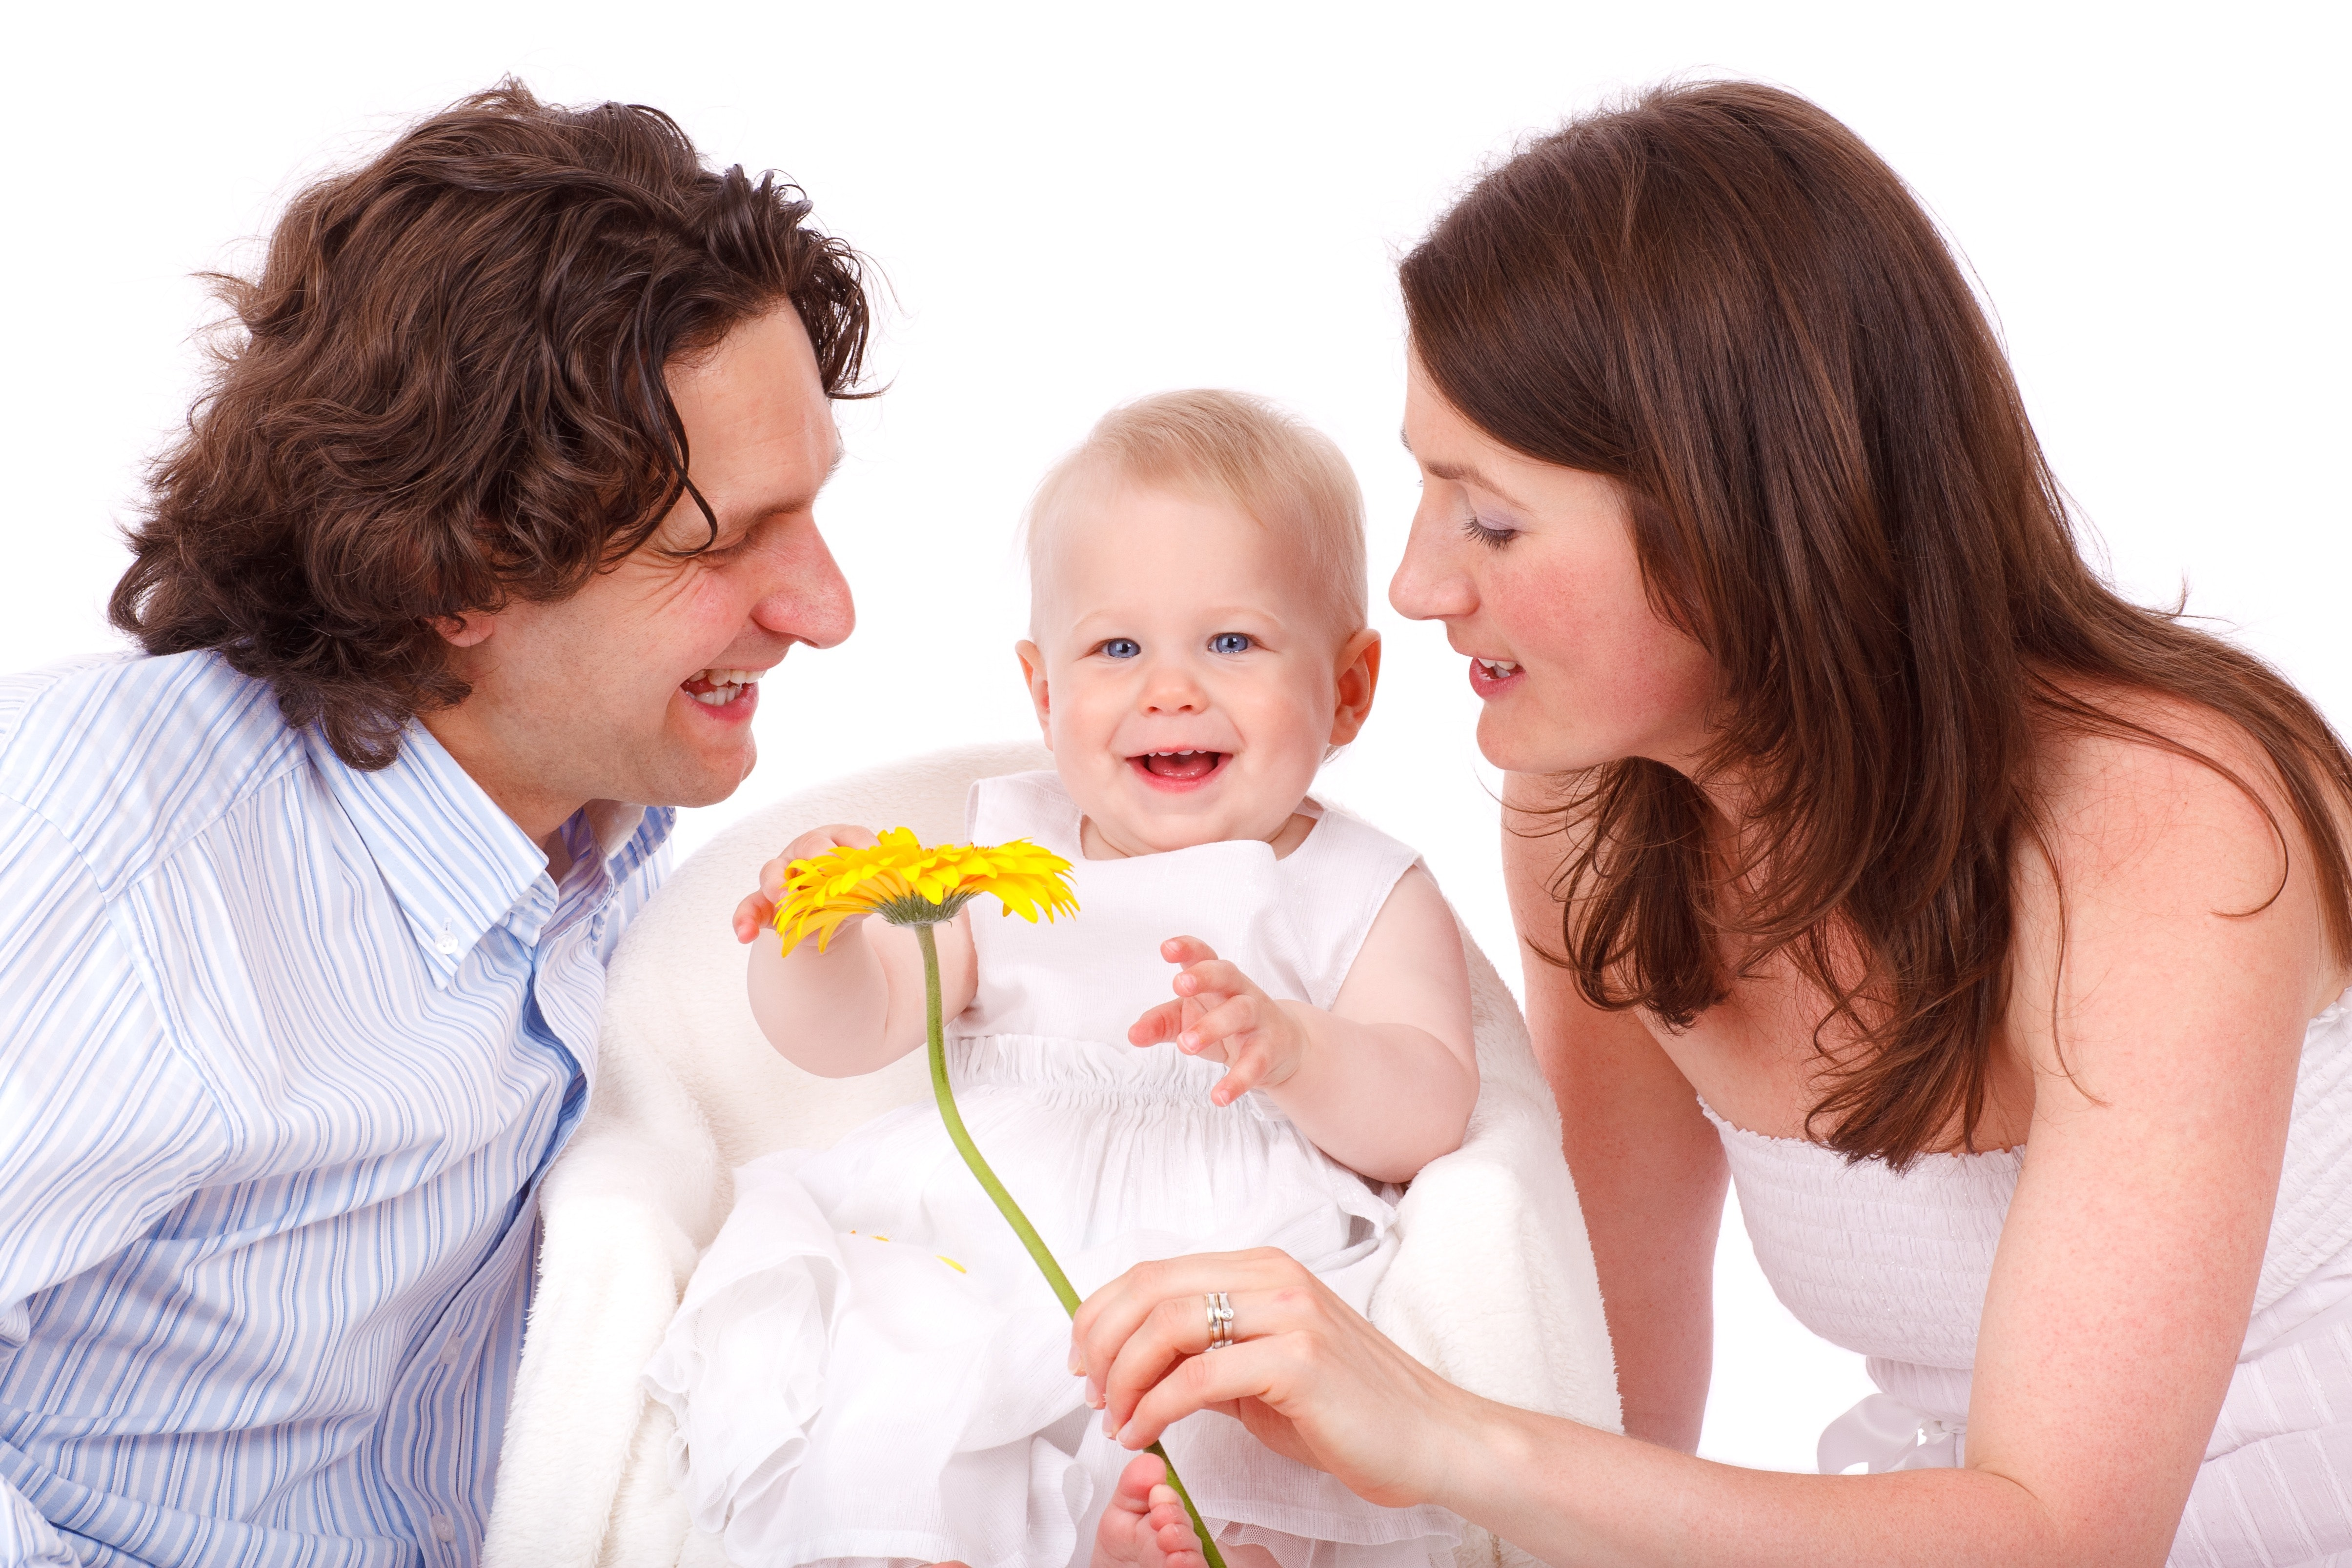 Man in White and Gray Stripe Button Up Long Sleeve Shirt Facing Baby in White Sleeveless Dress Beside Woman in White Strapless Dress Holding Yellow Flower, Baby, Woman, White, Together, HQ Photo